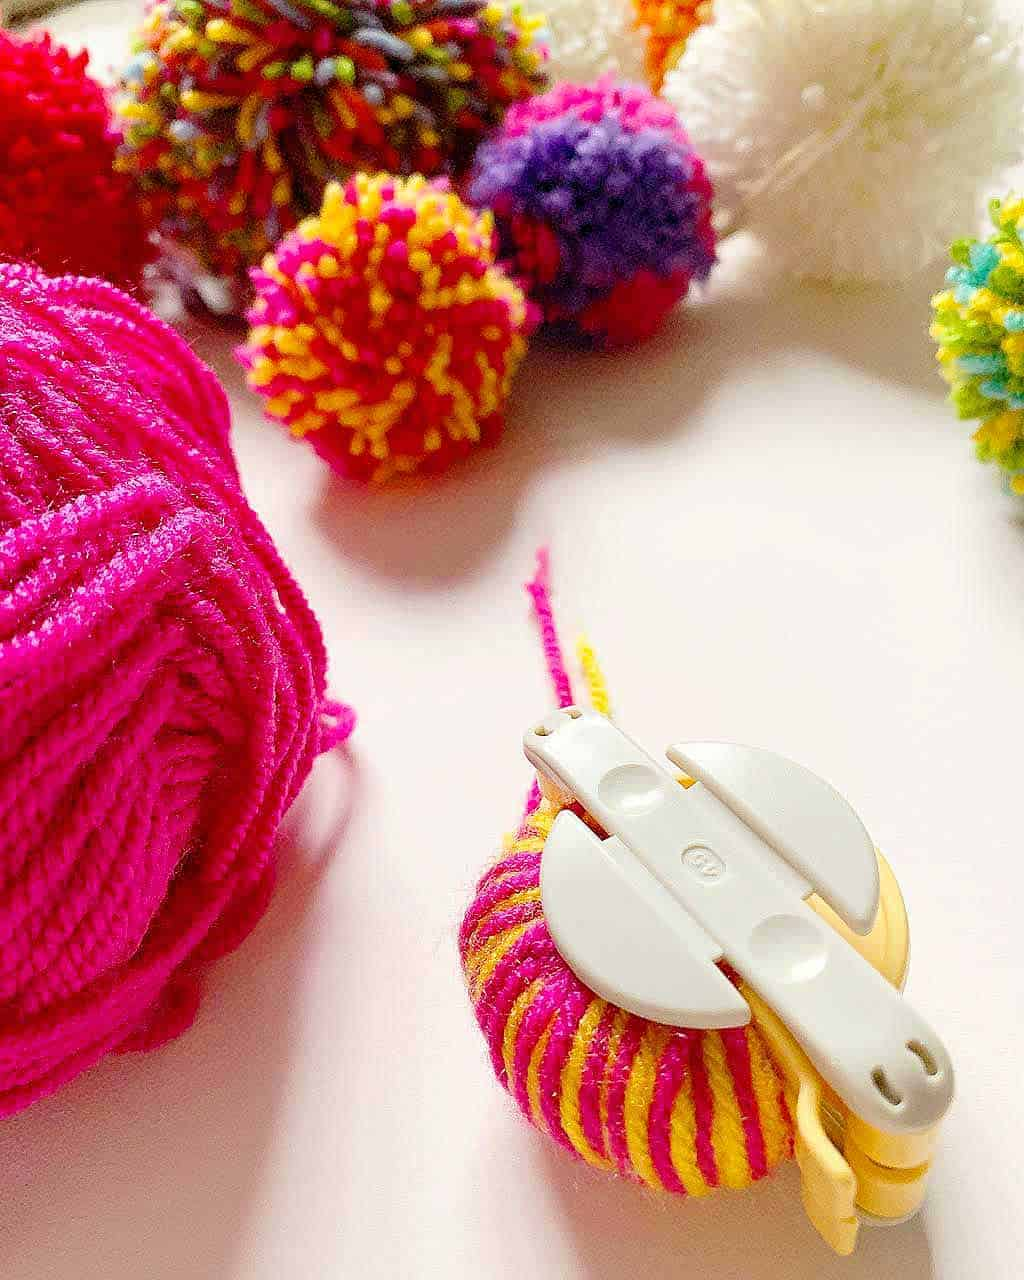 Pom pom makers are a fantastic way of making pom poms quickly and easily!